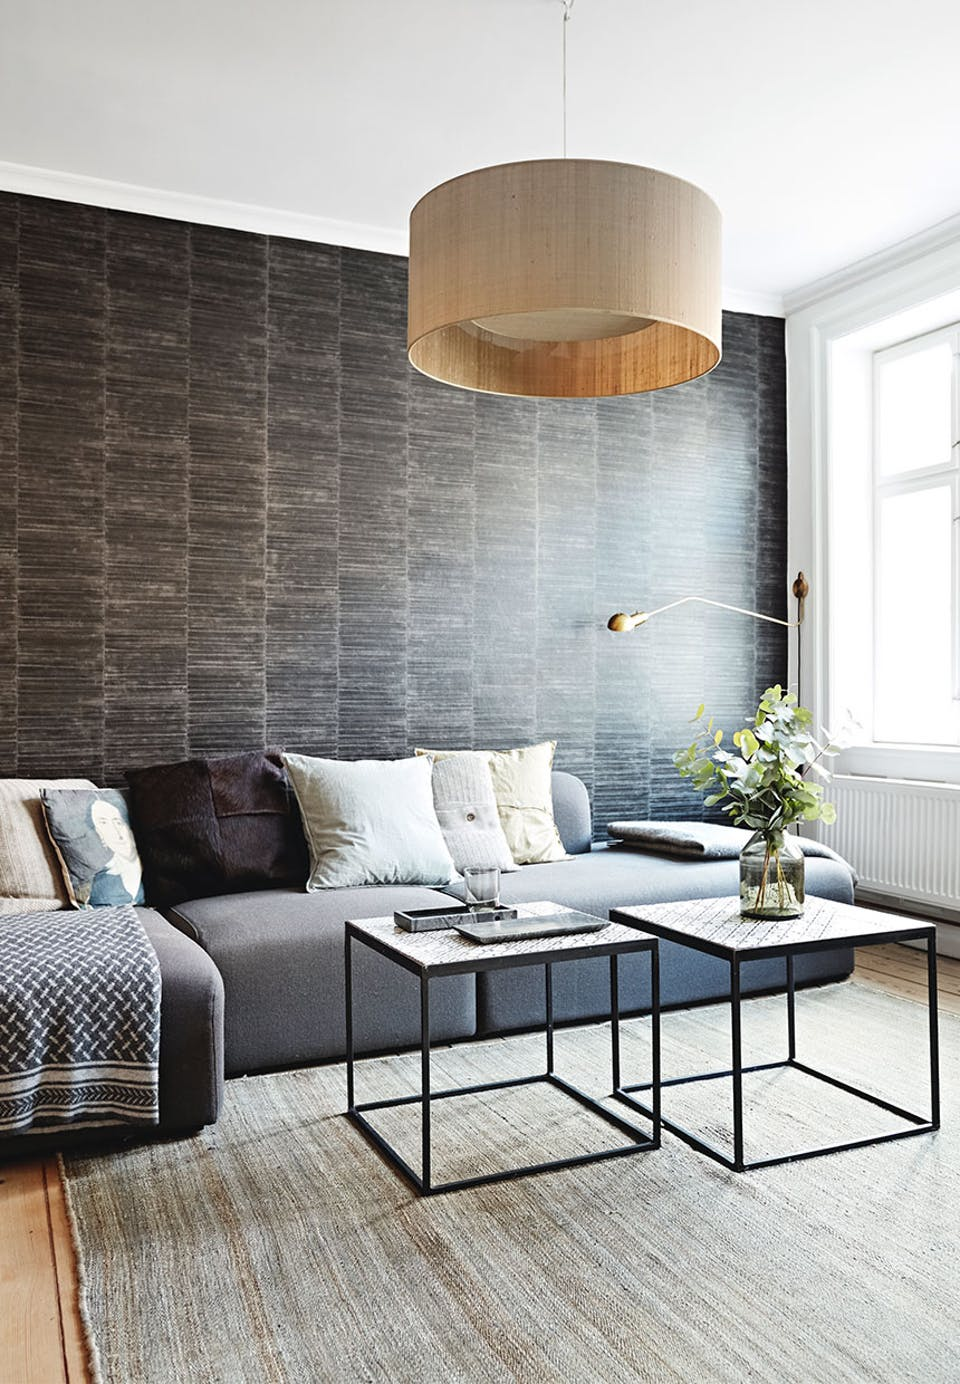 The living room is another space with an eye catchy wallpaper wall, and this one imitates chocolate wood planks